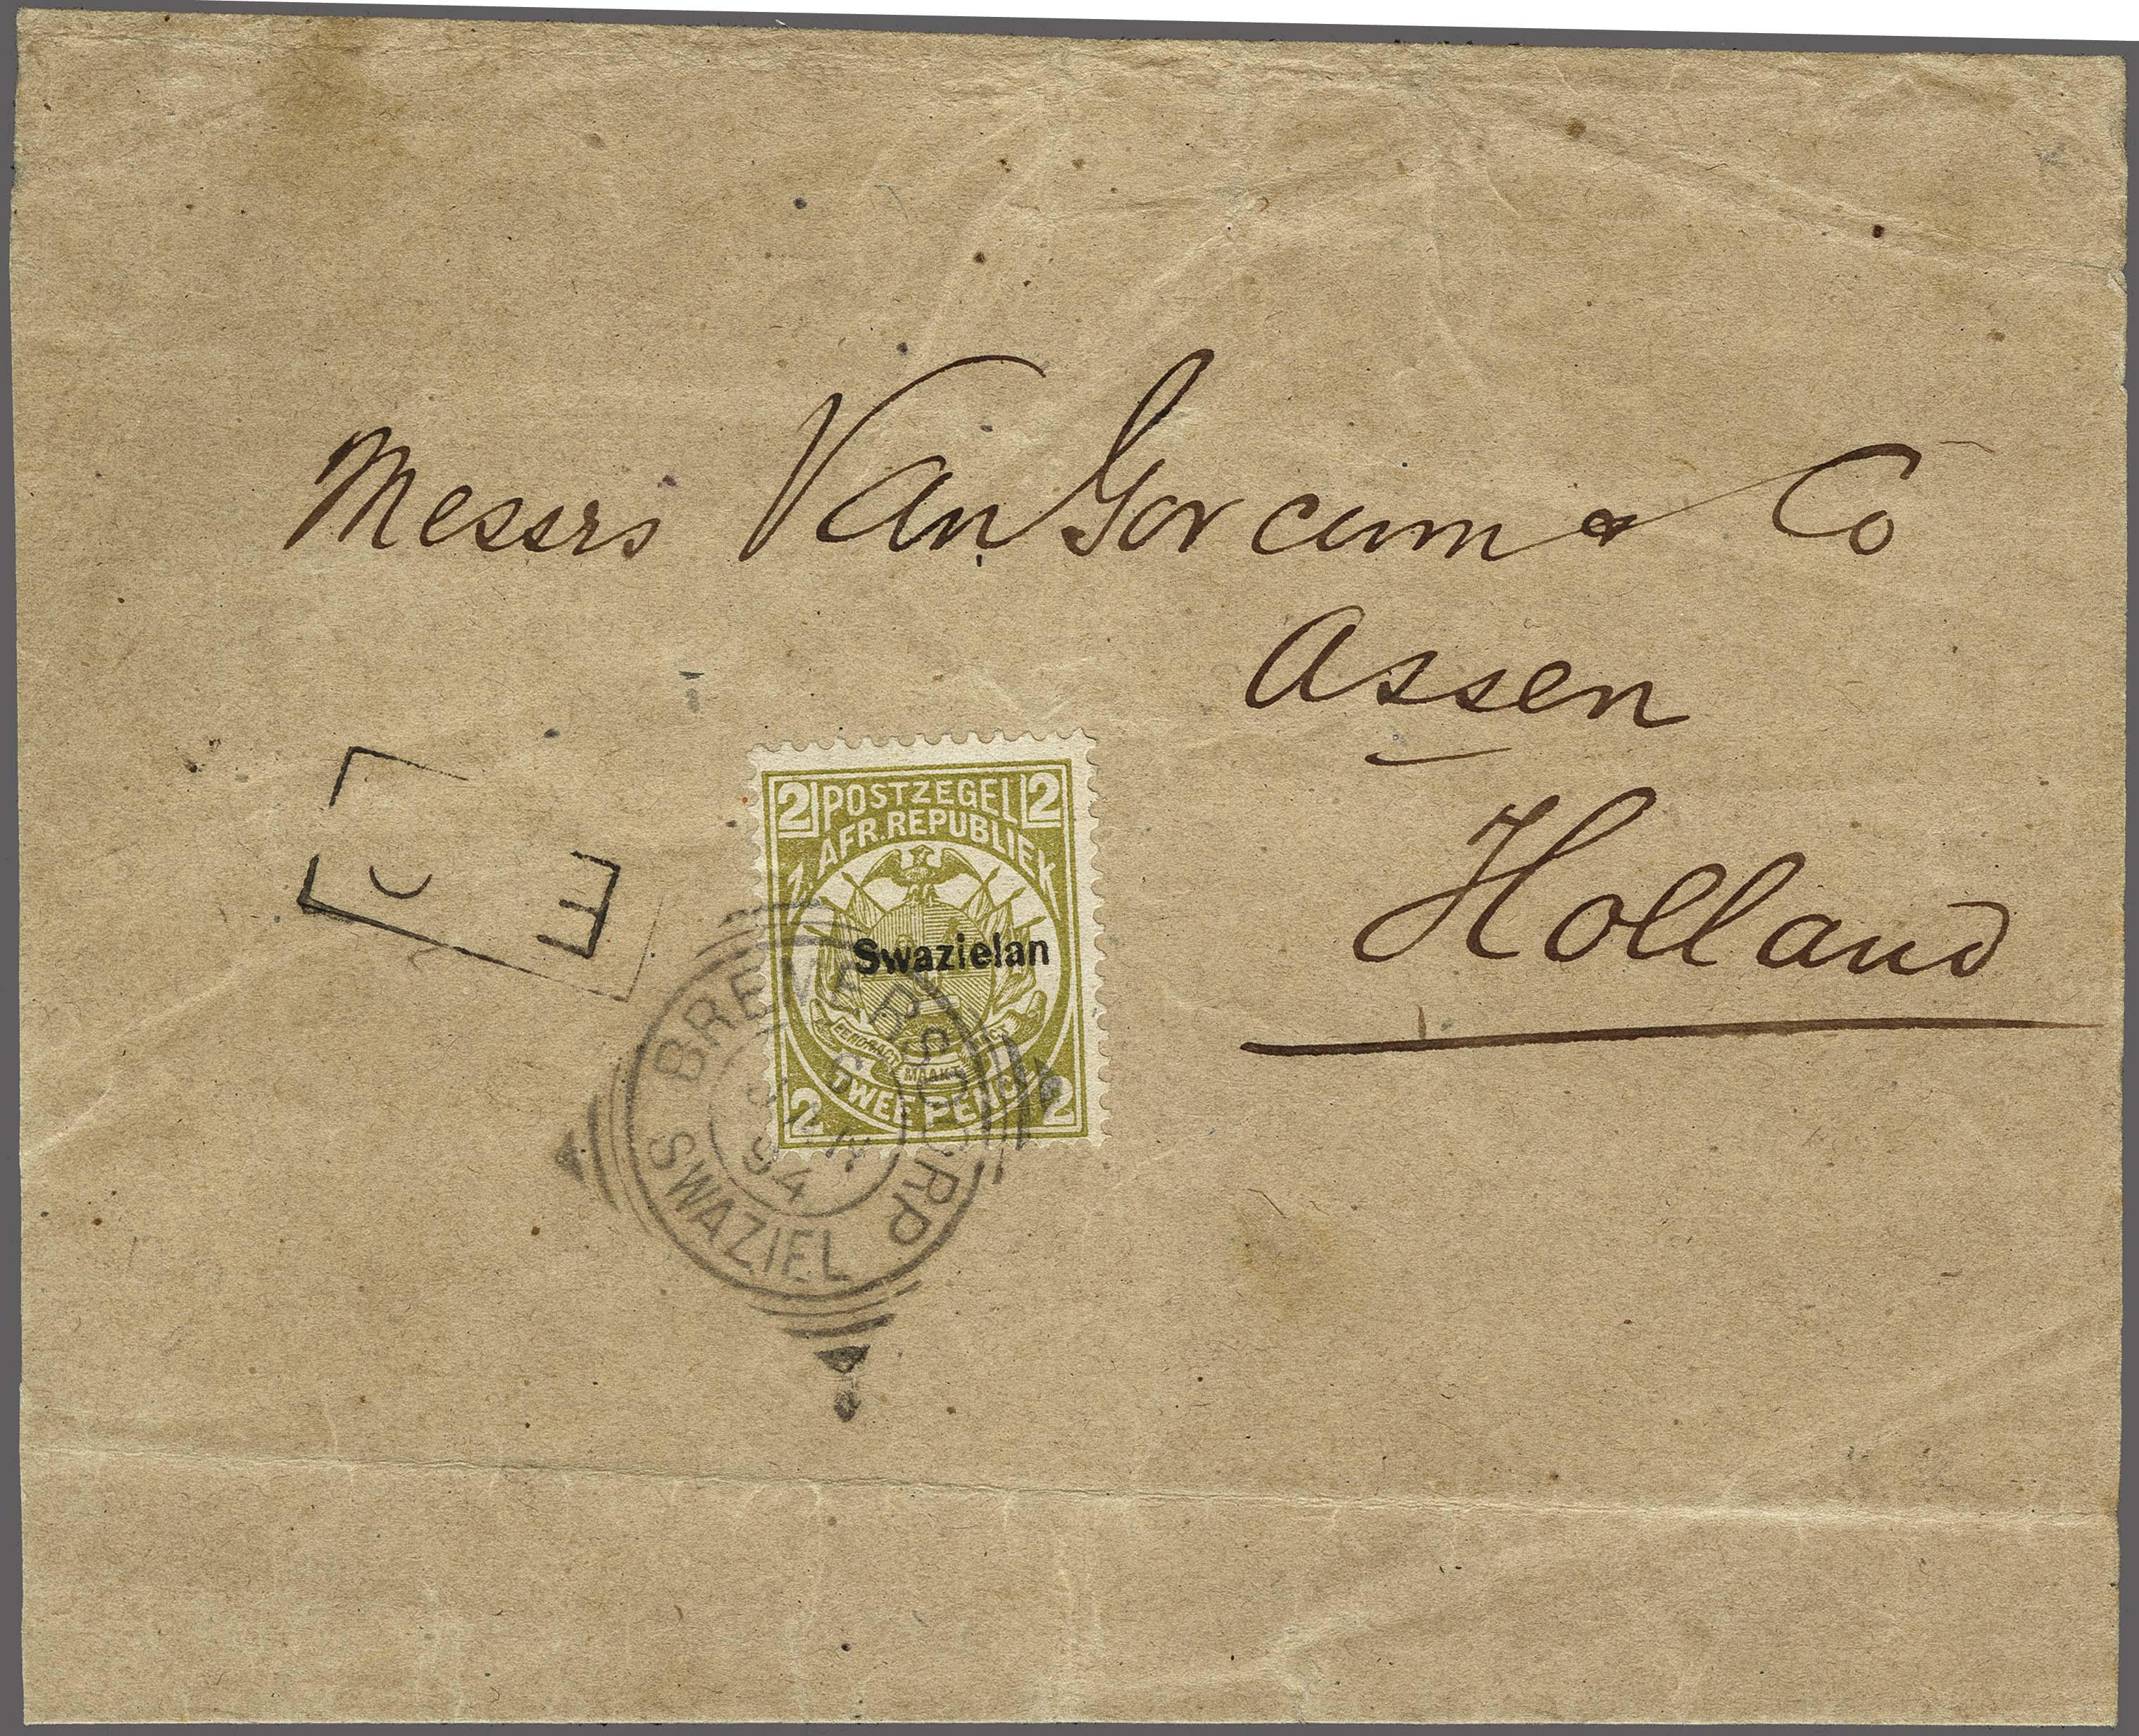 Lot 158 - Great Britain and former colonies swaziland -  Corinphila Veilingen Auction 250-253 - Day 1 - Foreign countries